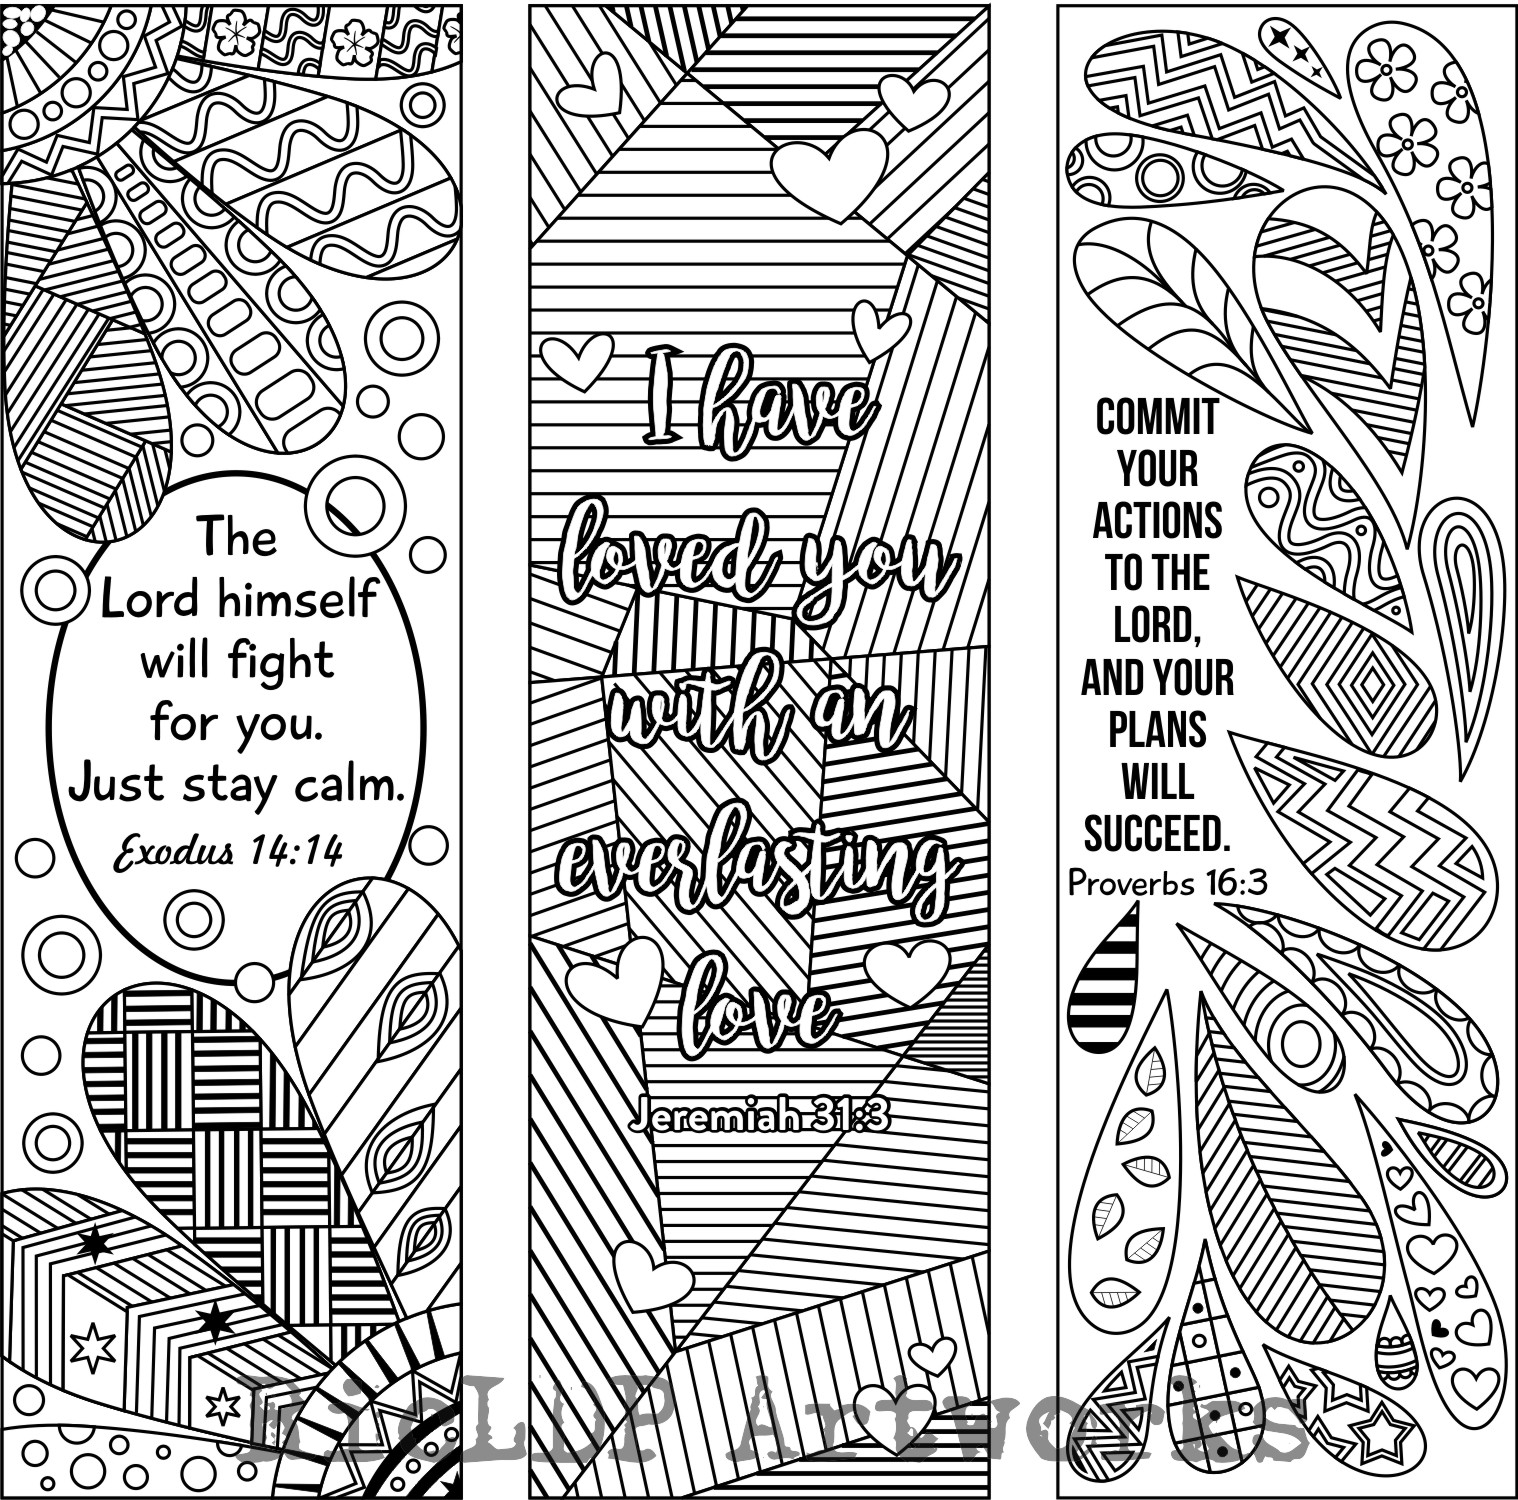 RicLDP Artworks: Six Bible Verse Coloring Bookmarks